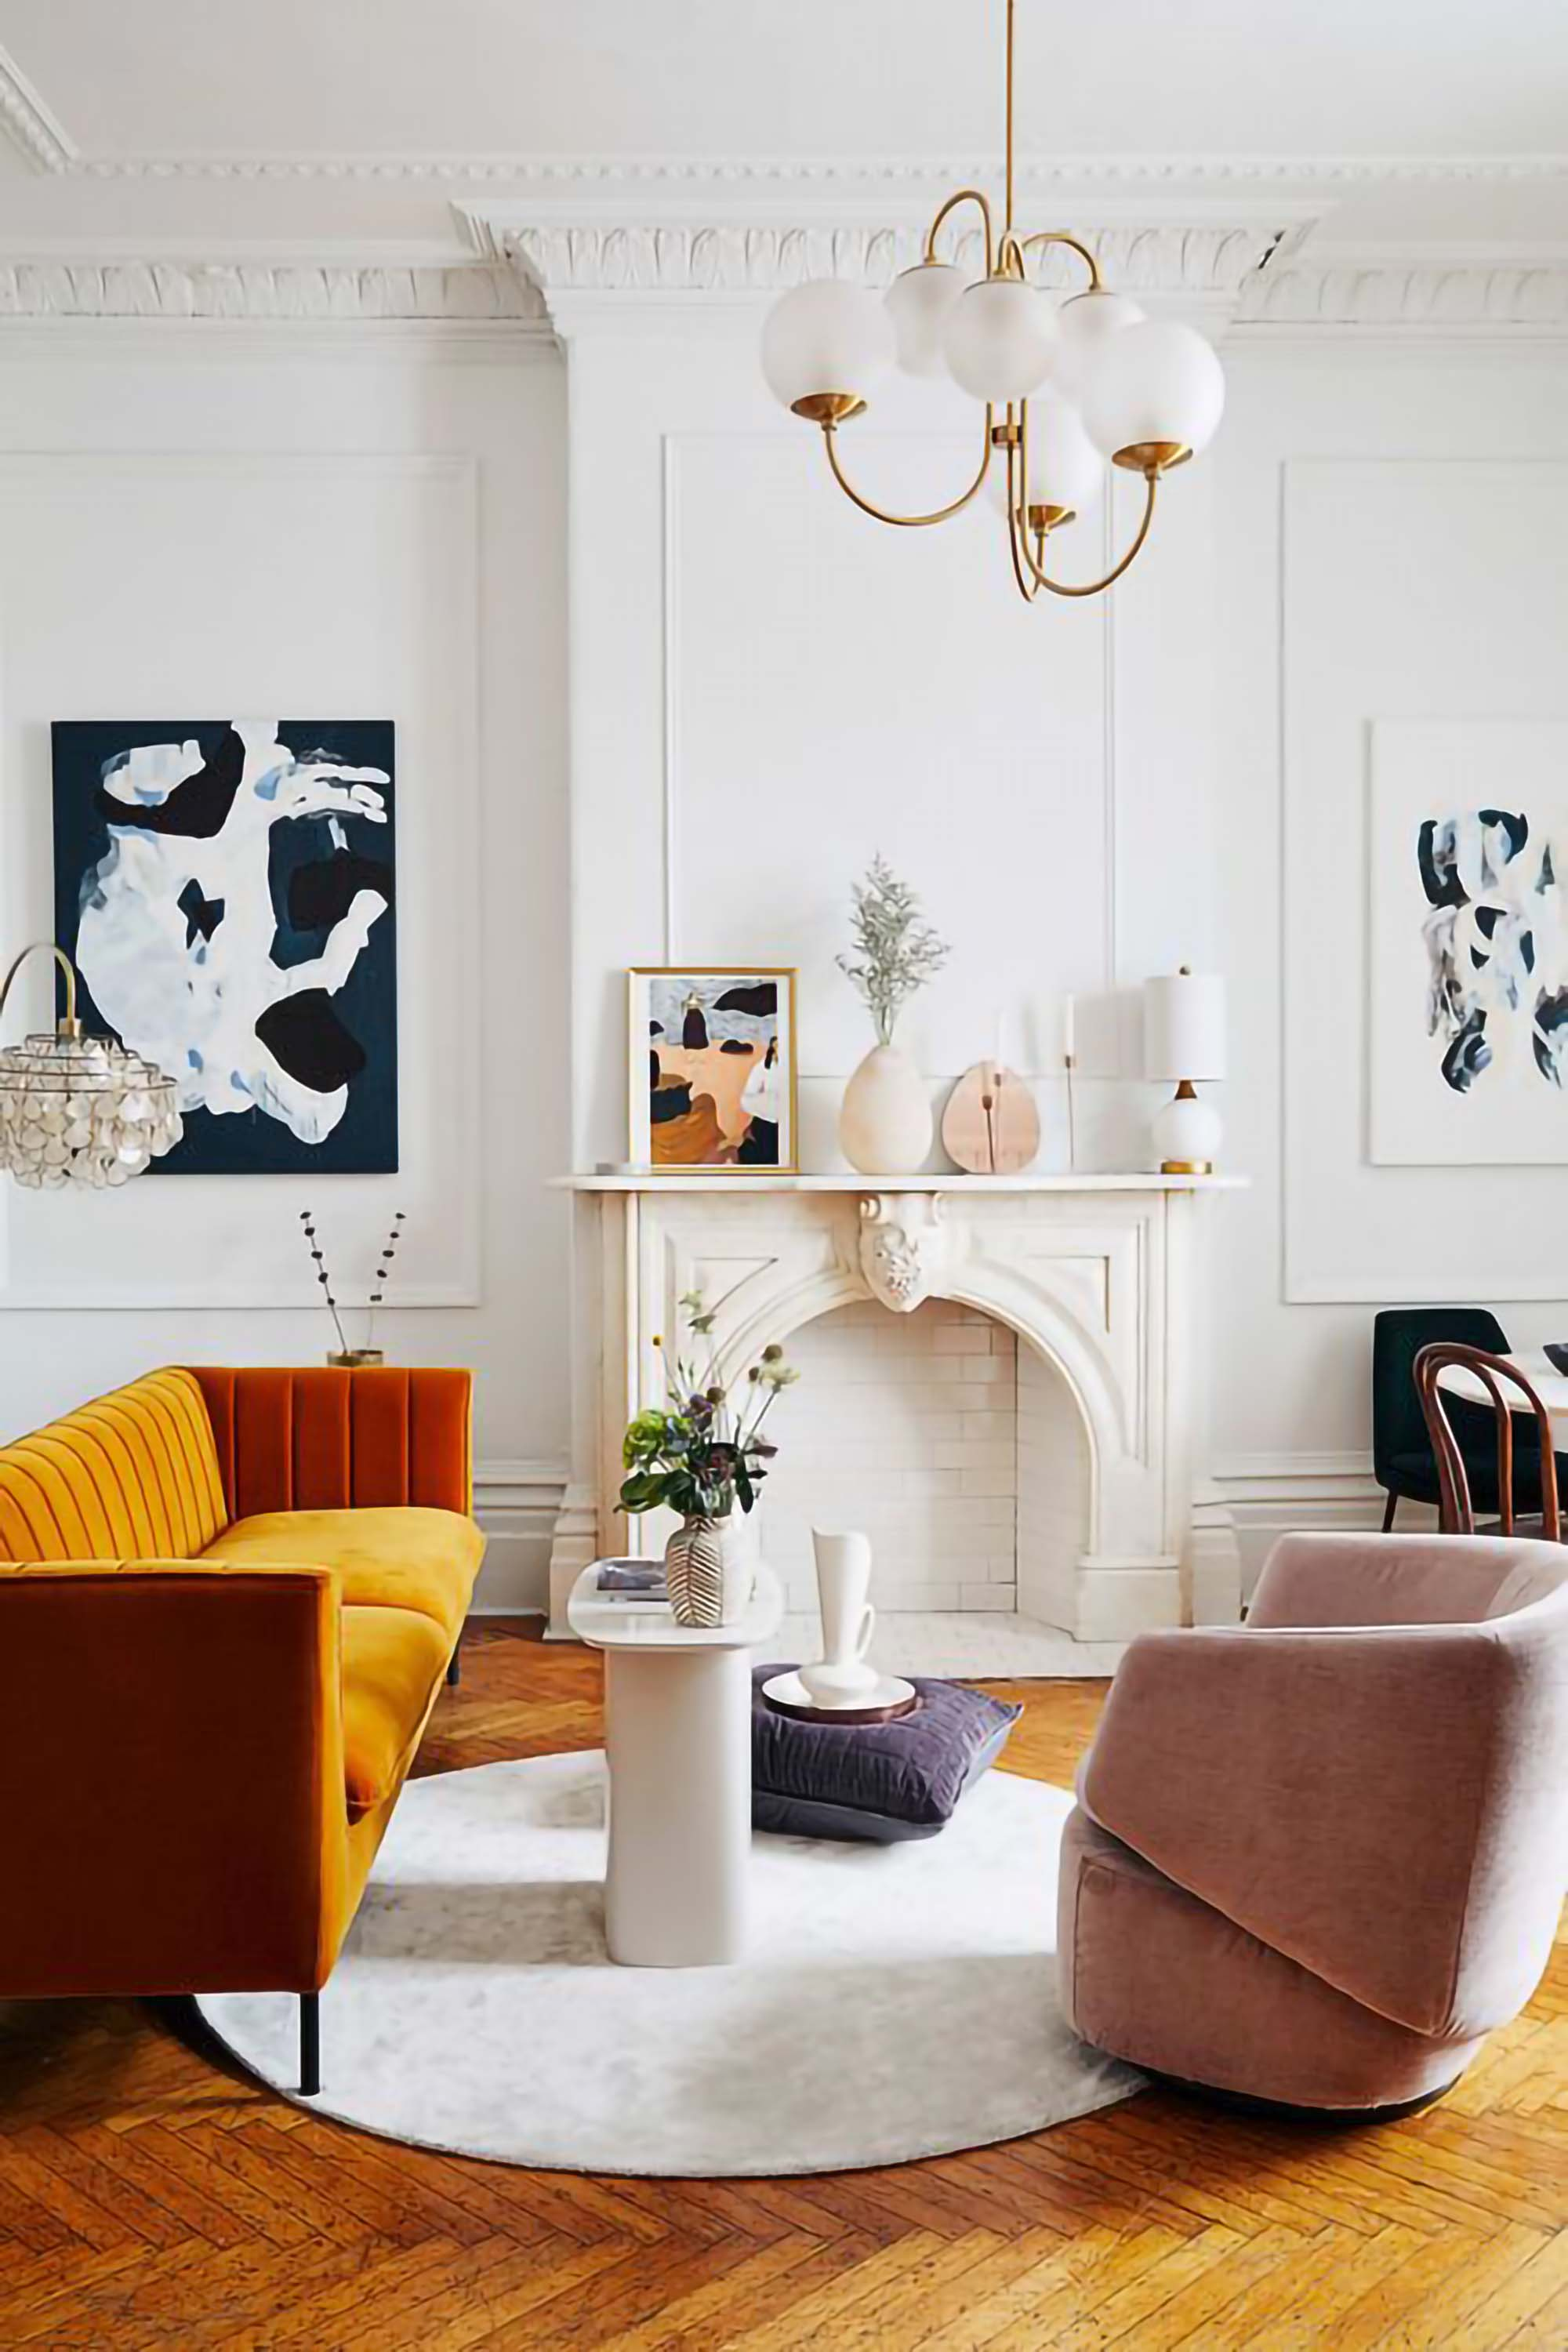 5 Things you Must Consider Before Purchasing Art for your Home